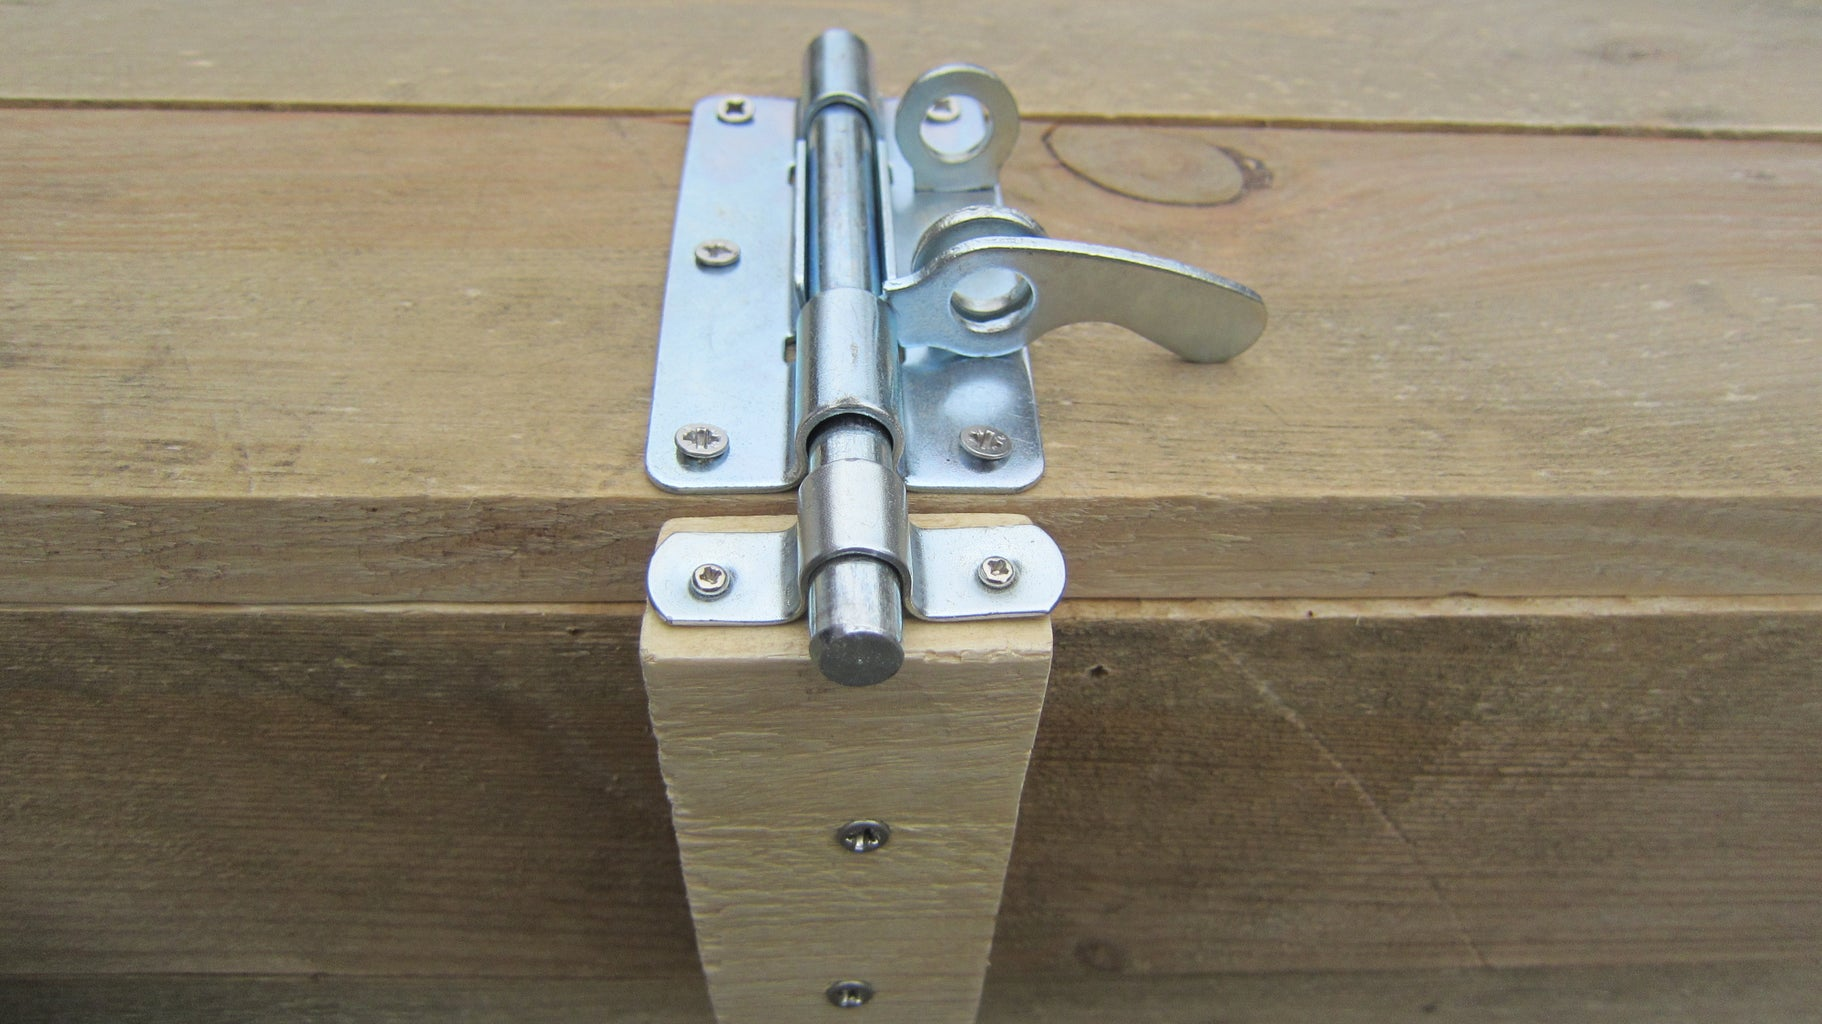 Hinges and Stuff